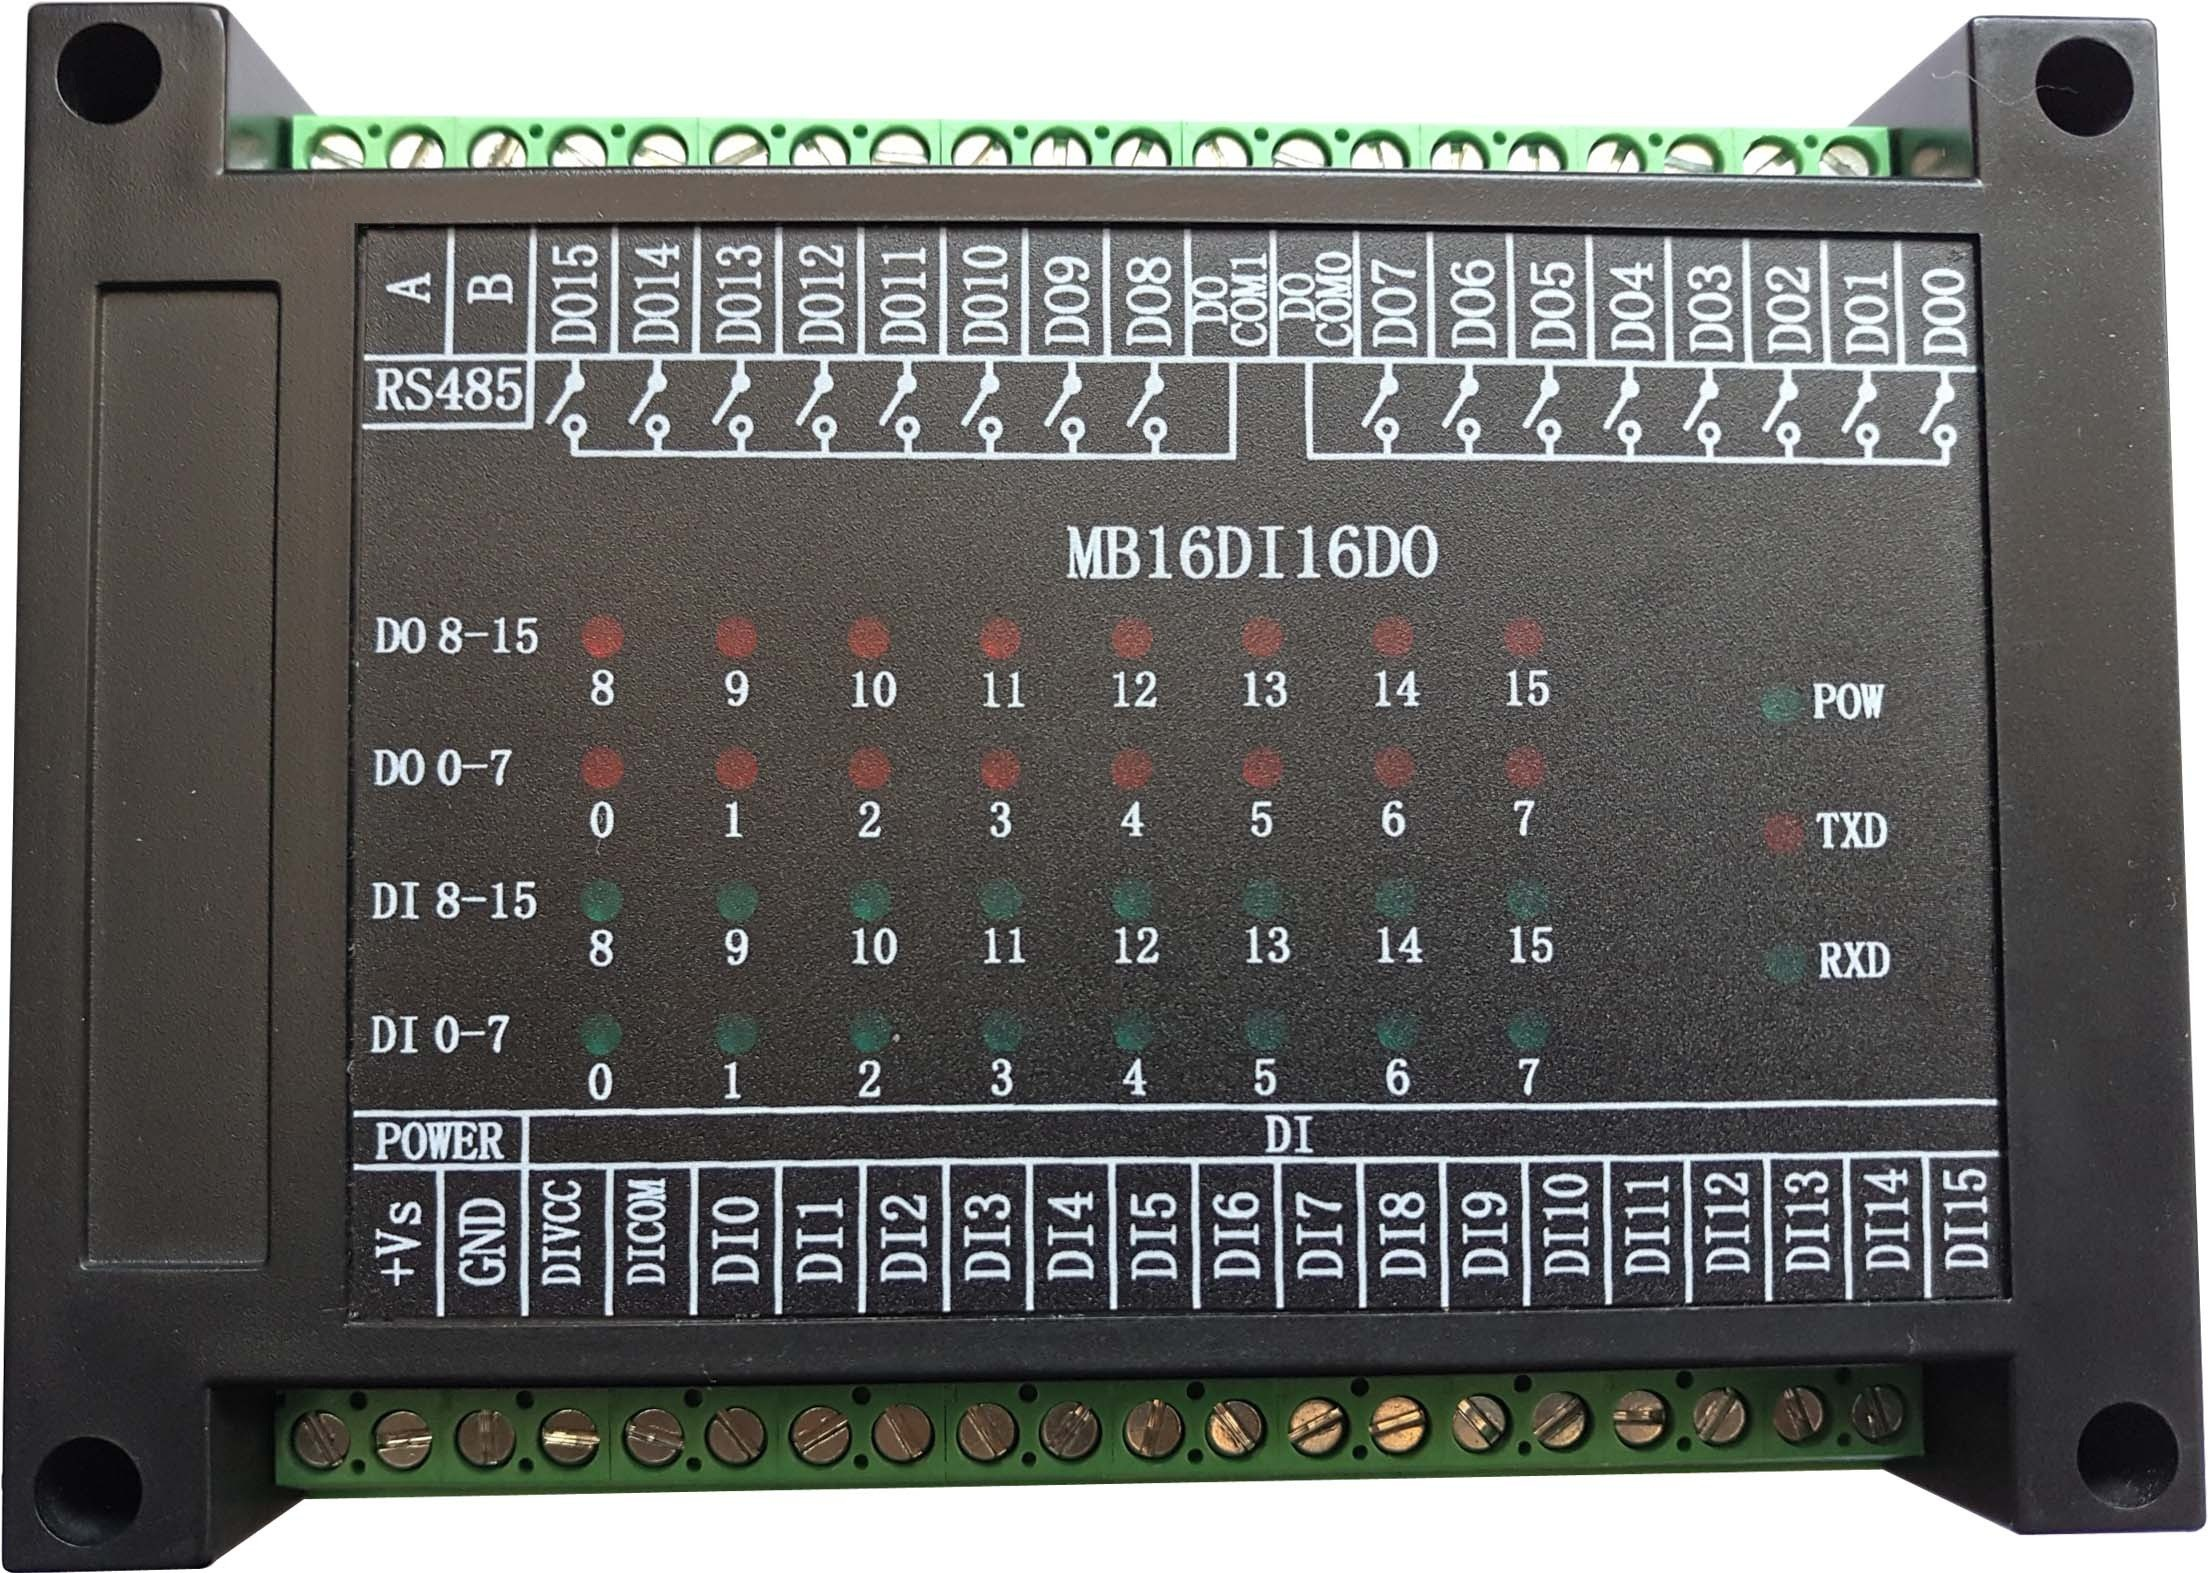 Switch Input and Output 16 Channel Open in 16 Channel Relay Output Module RS485 MODBUS RTU